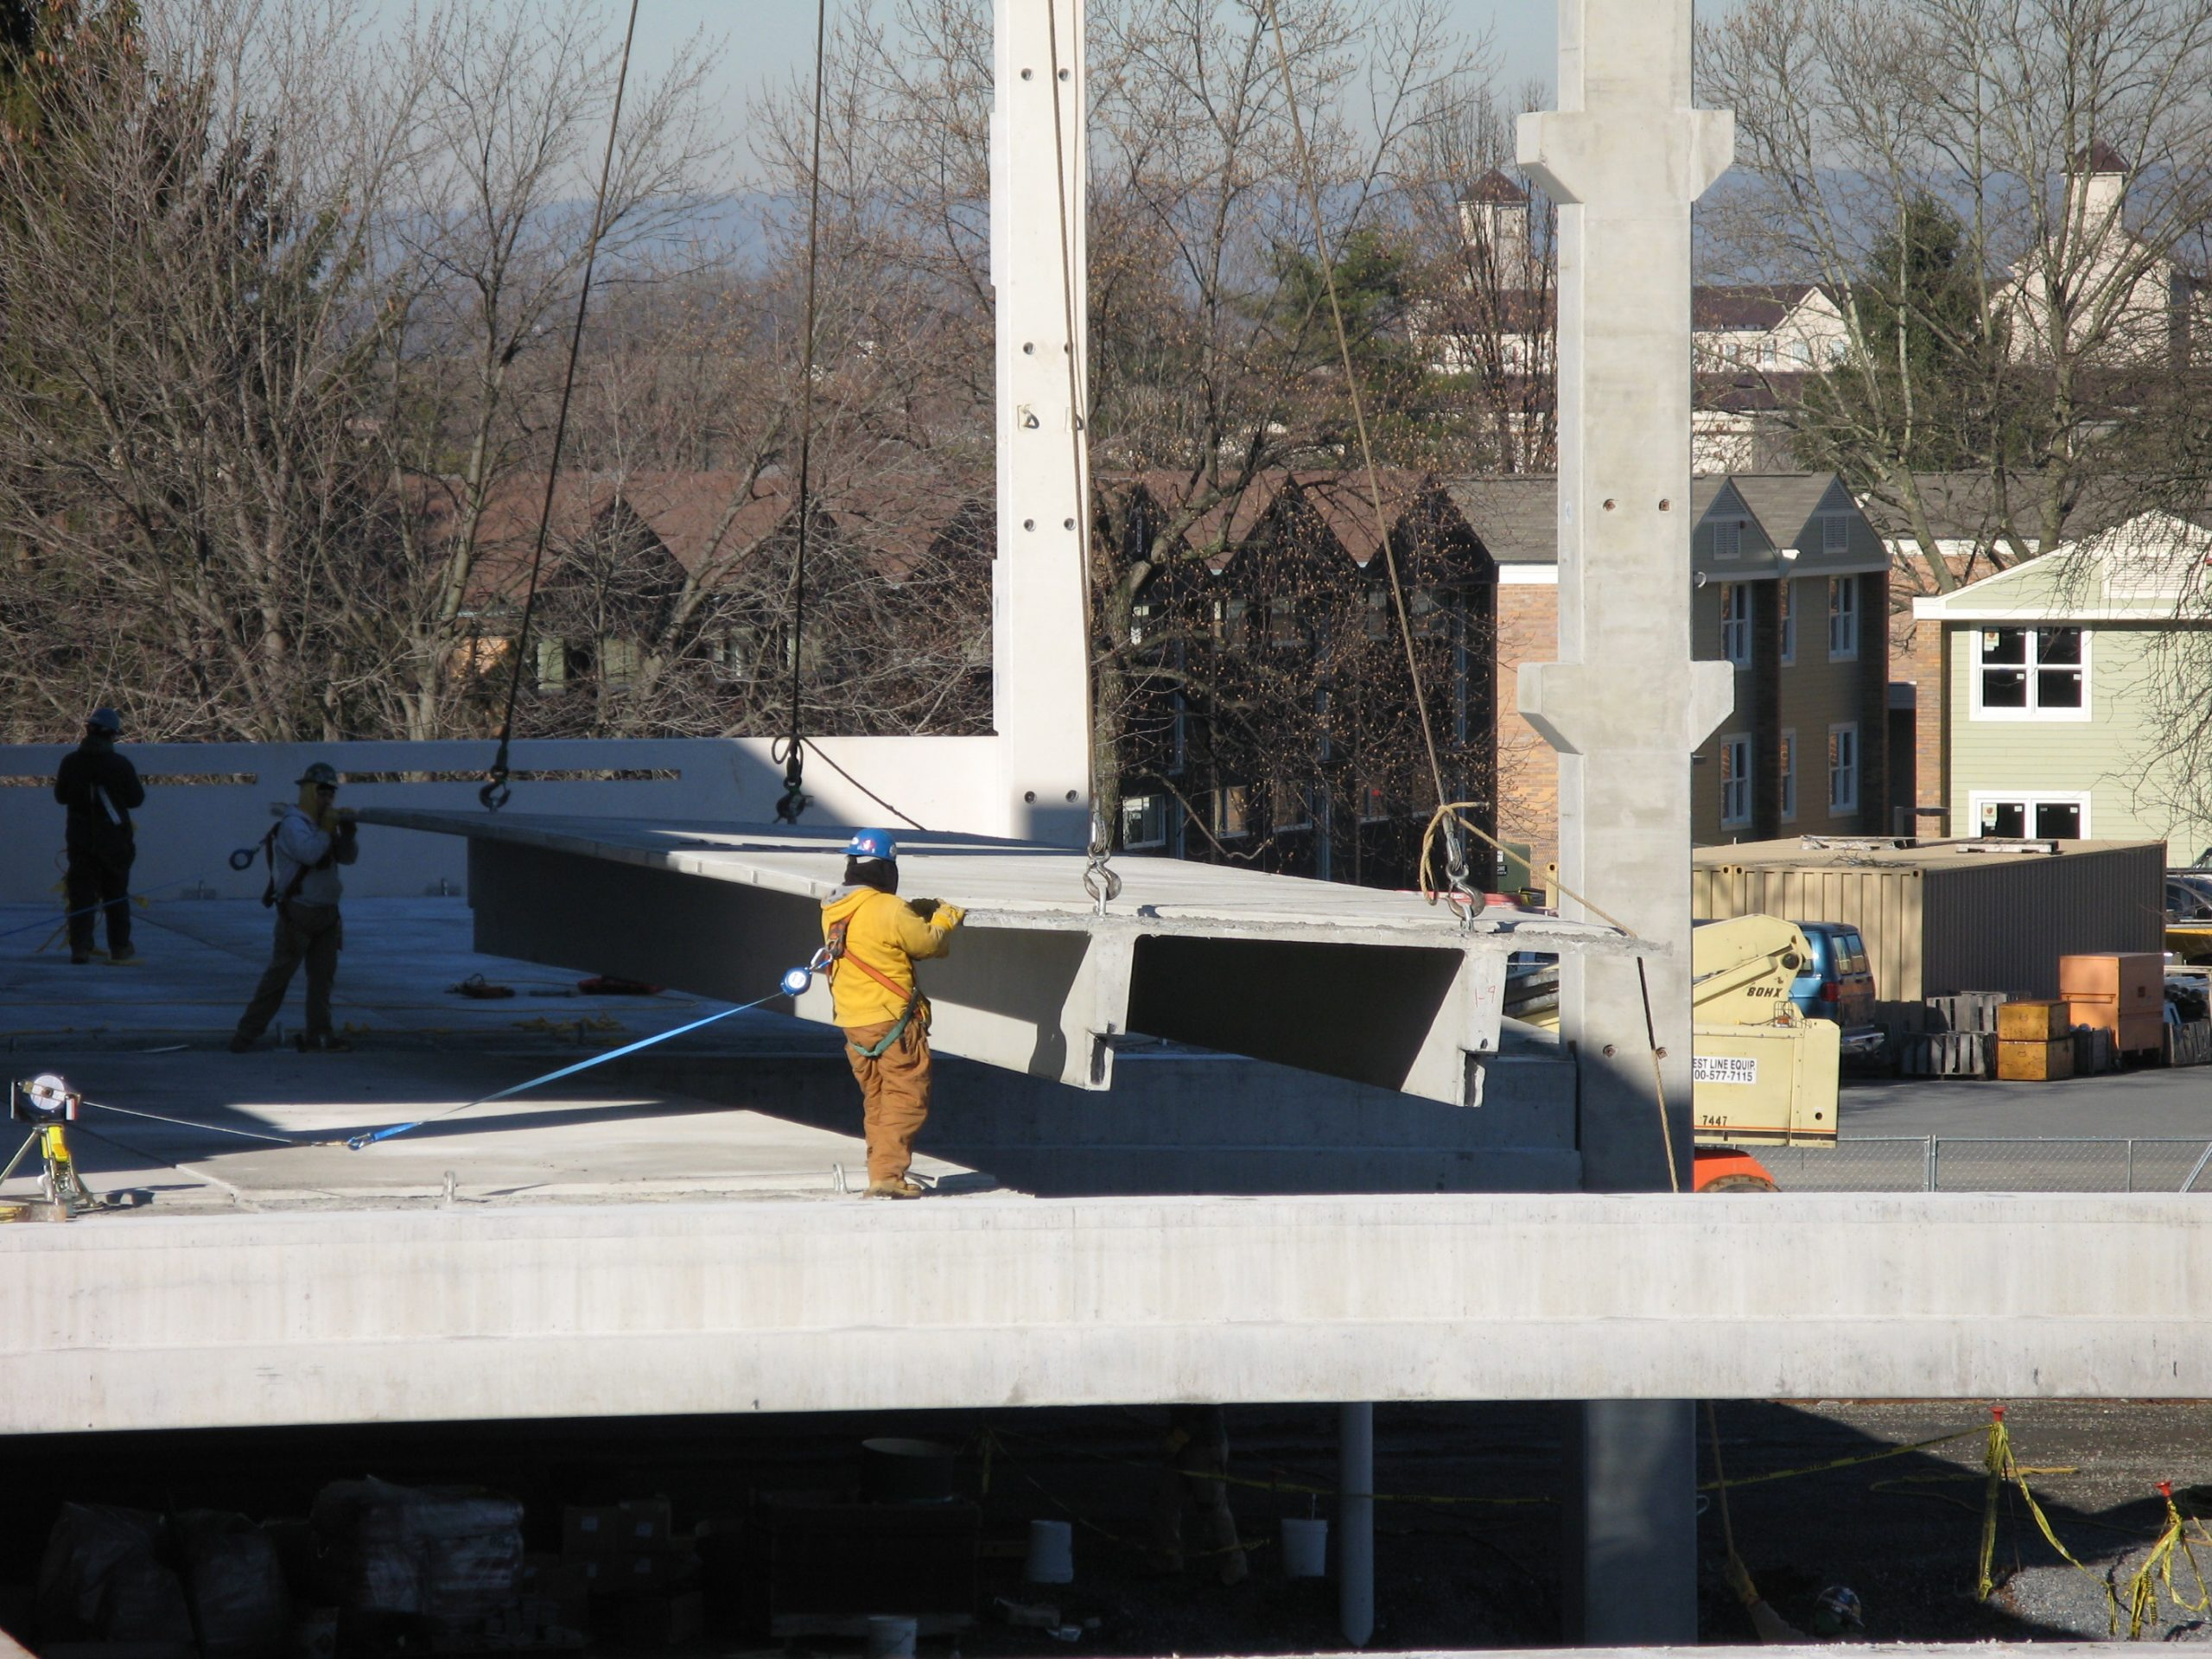 Double Tees being placed while building parking garage